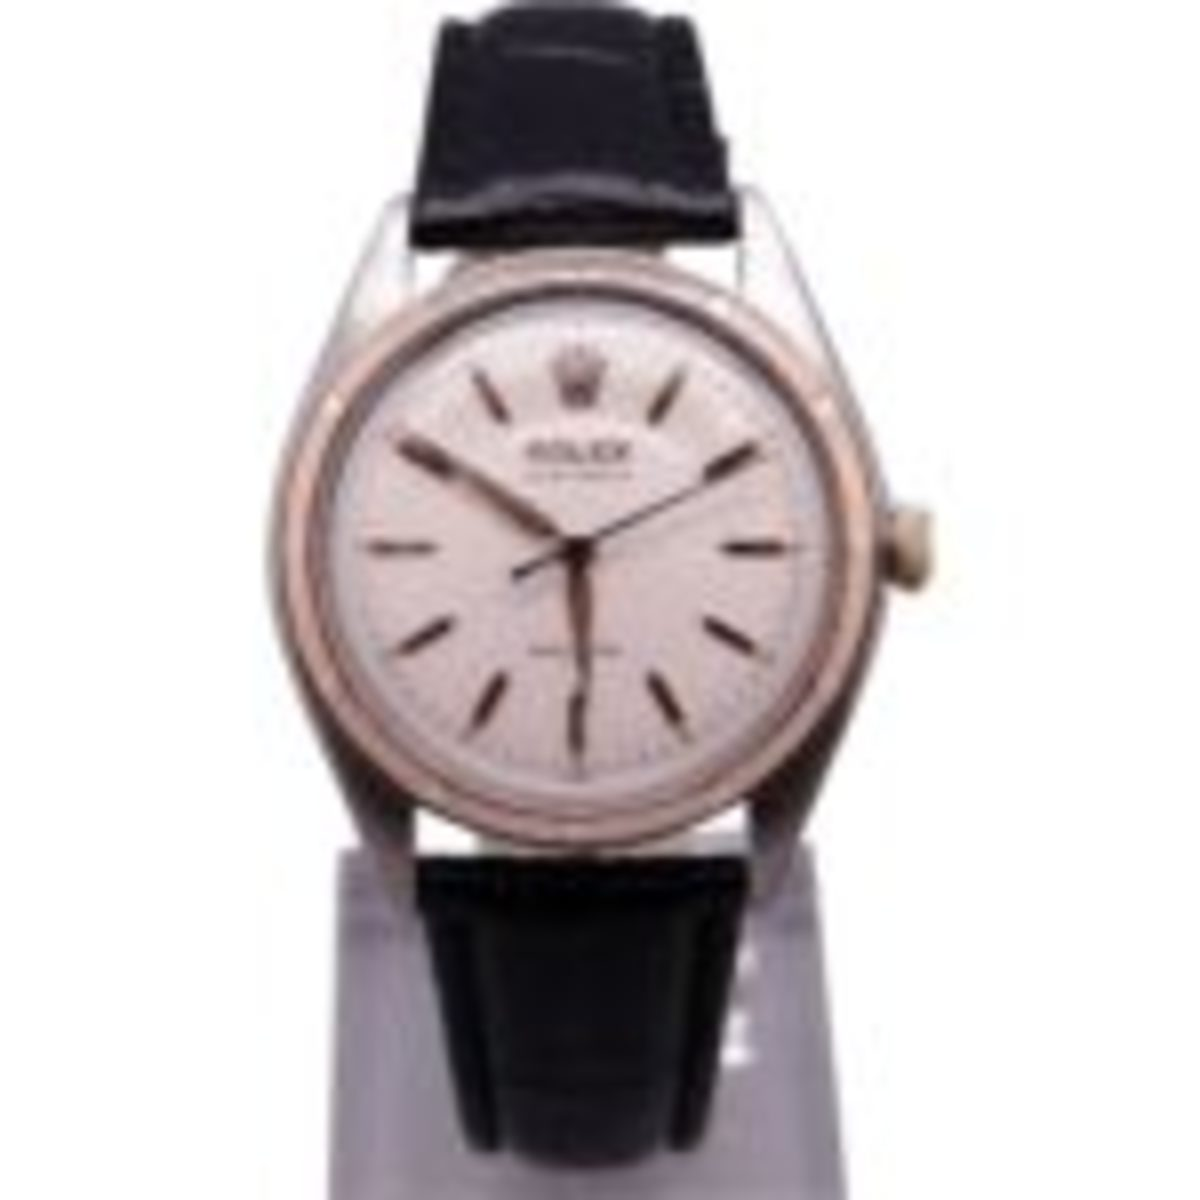 1949 Rolex Oyster Perpetual Big Bubble. Courtesy of Ruby Lane